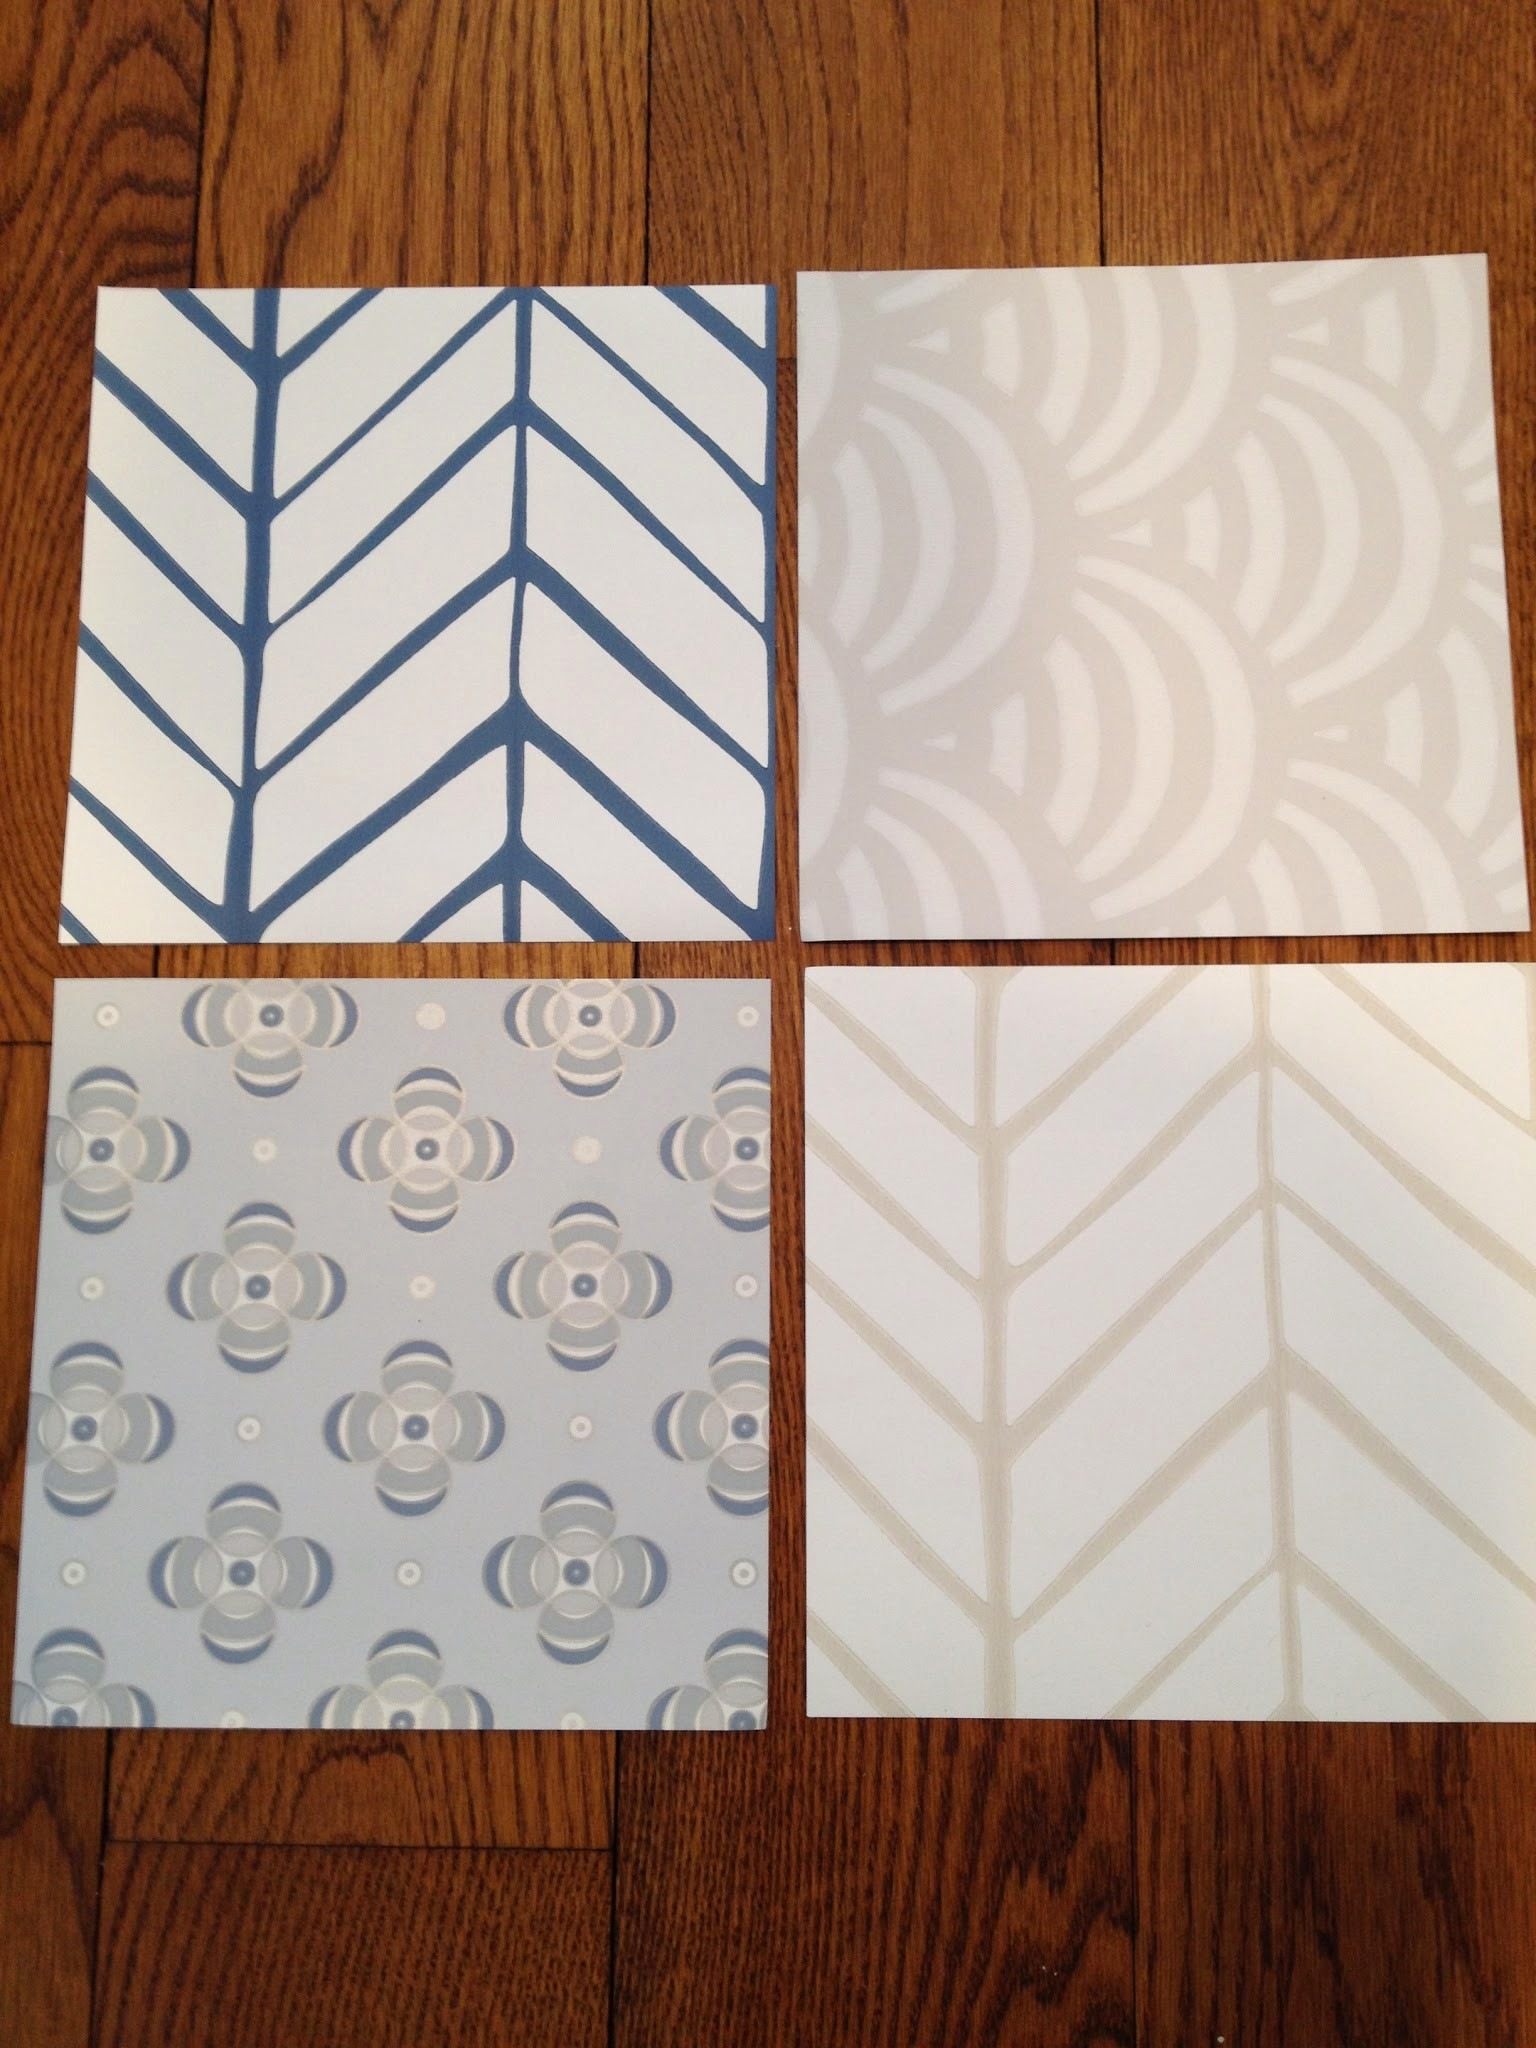 the picket fence projects What to do with these wallpaper samples 1536x2048